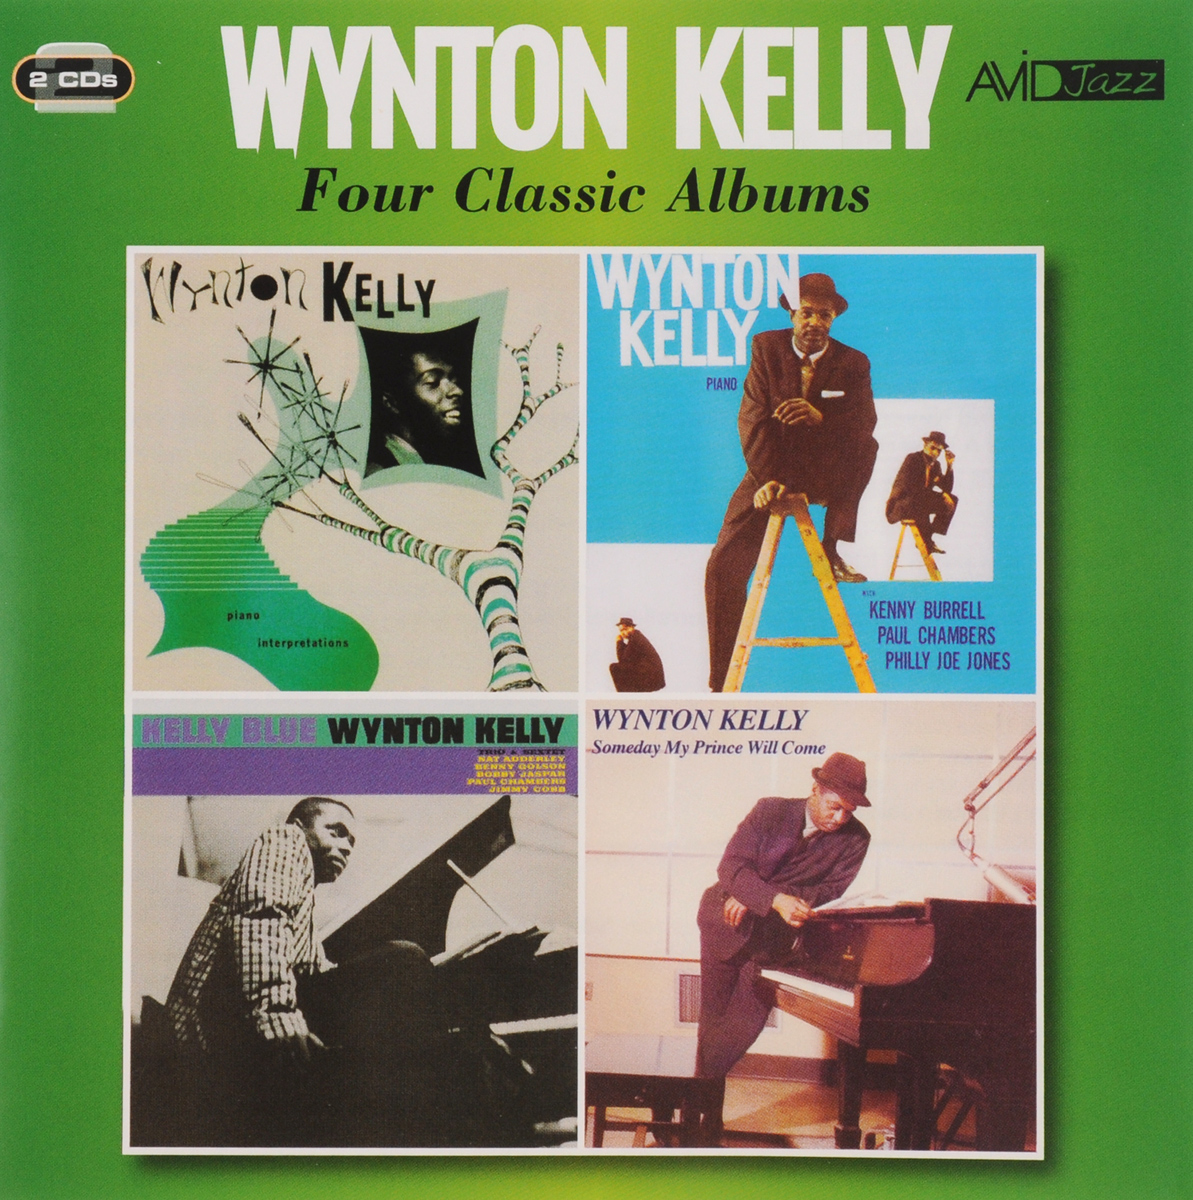 Уинтон Келли Avid Jazz. Wynton Kelly. Four Classic Albums (2 CD) келли кларксон kelly clarkson piece by piece